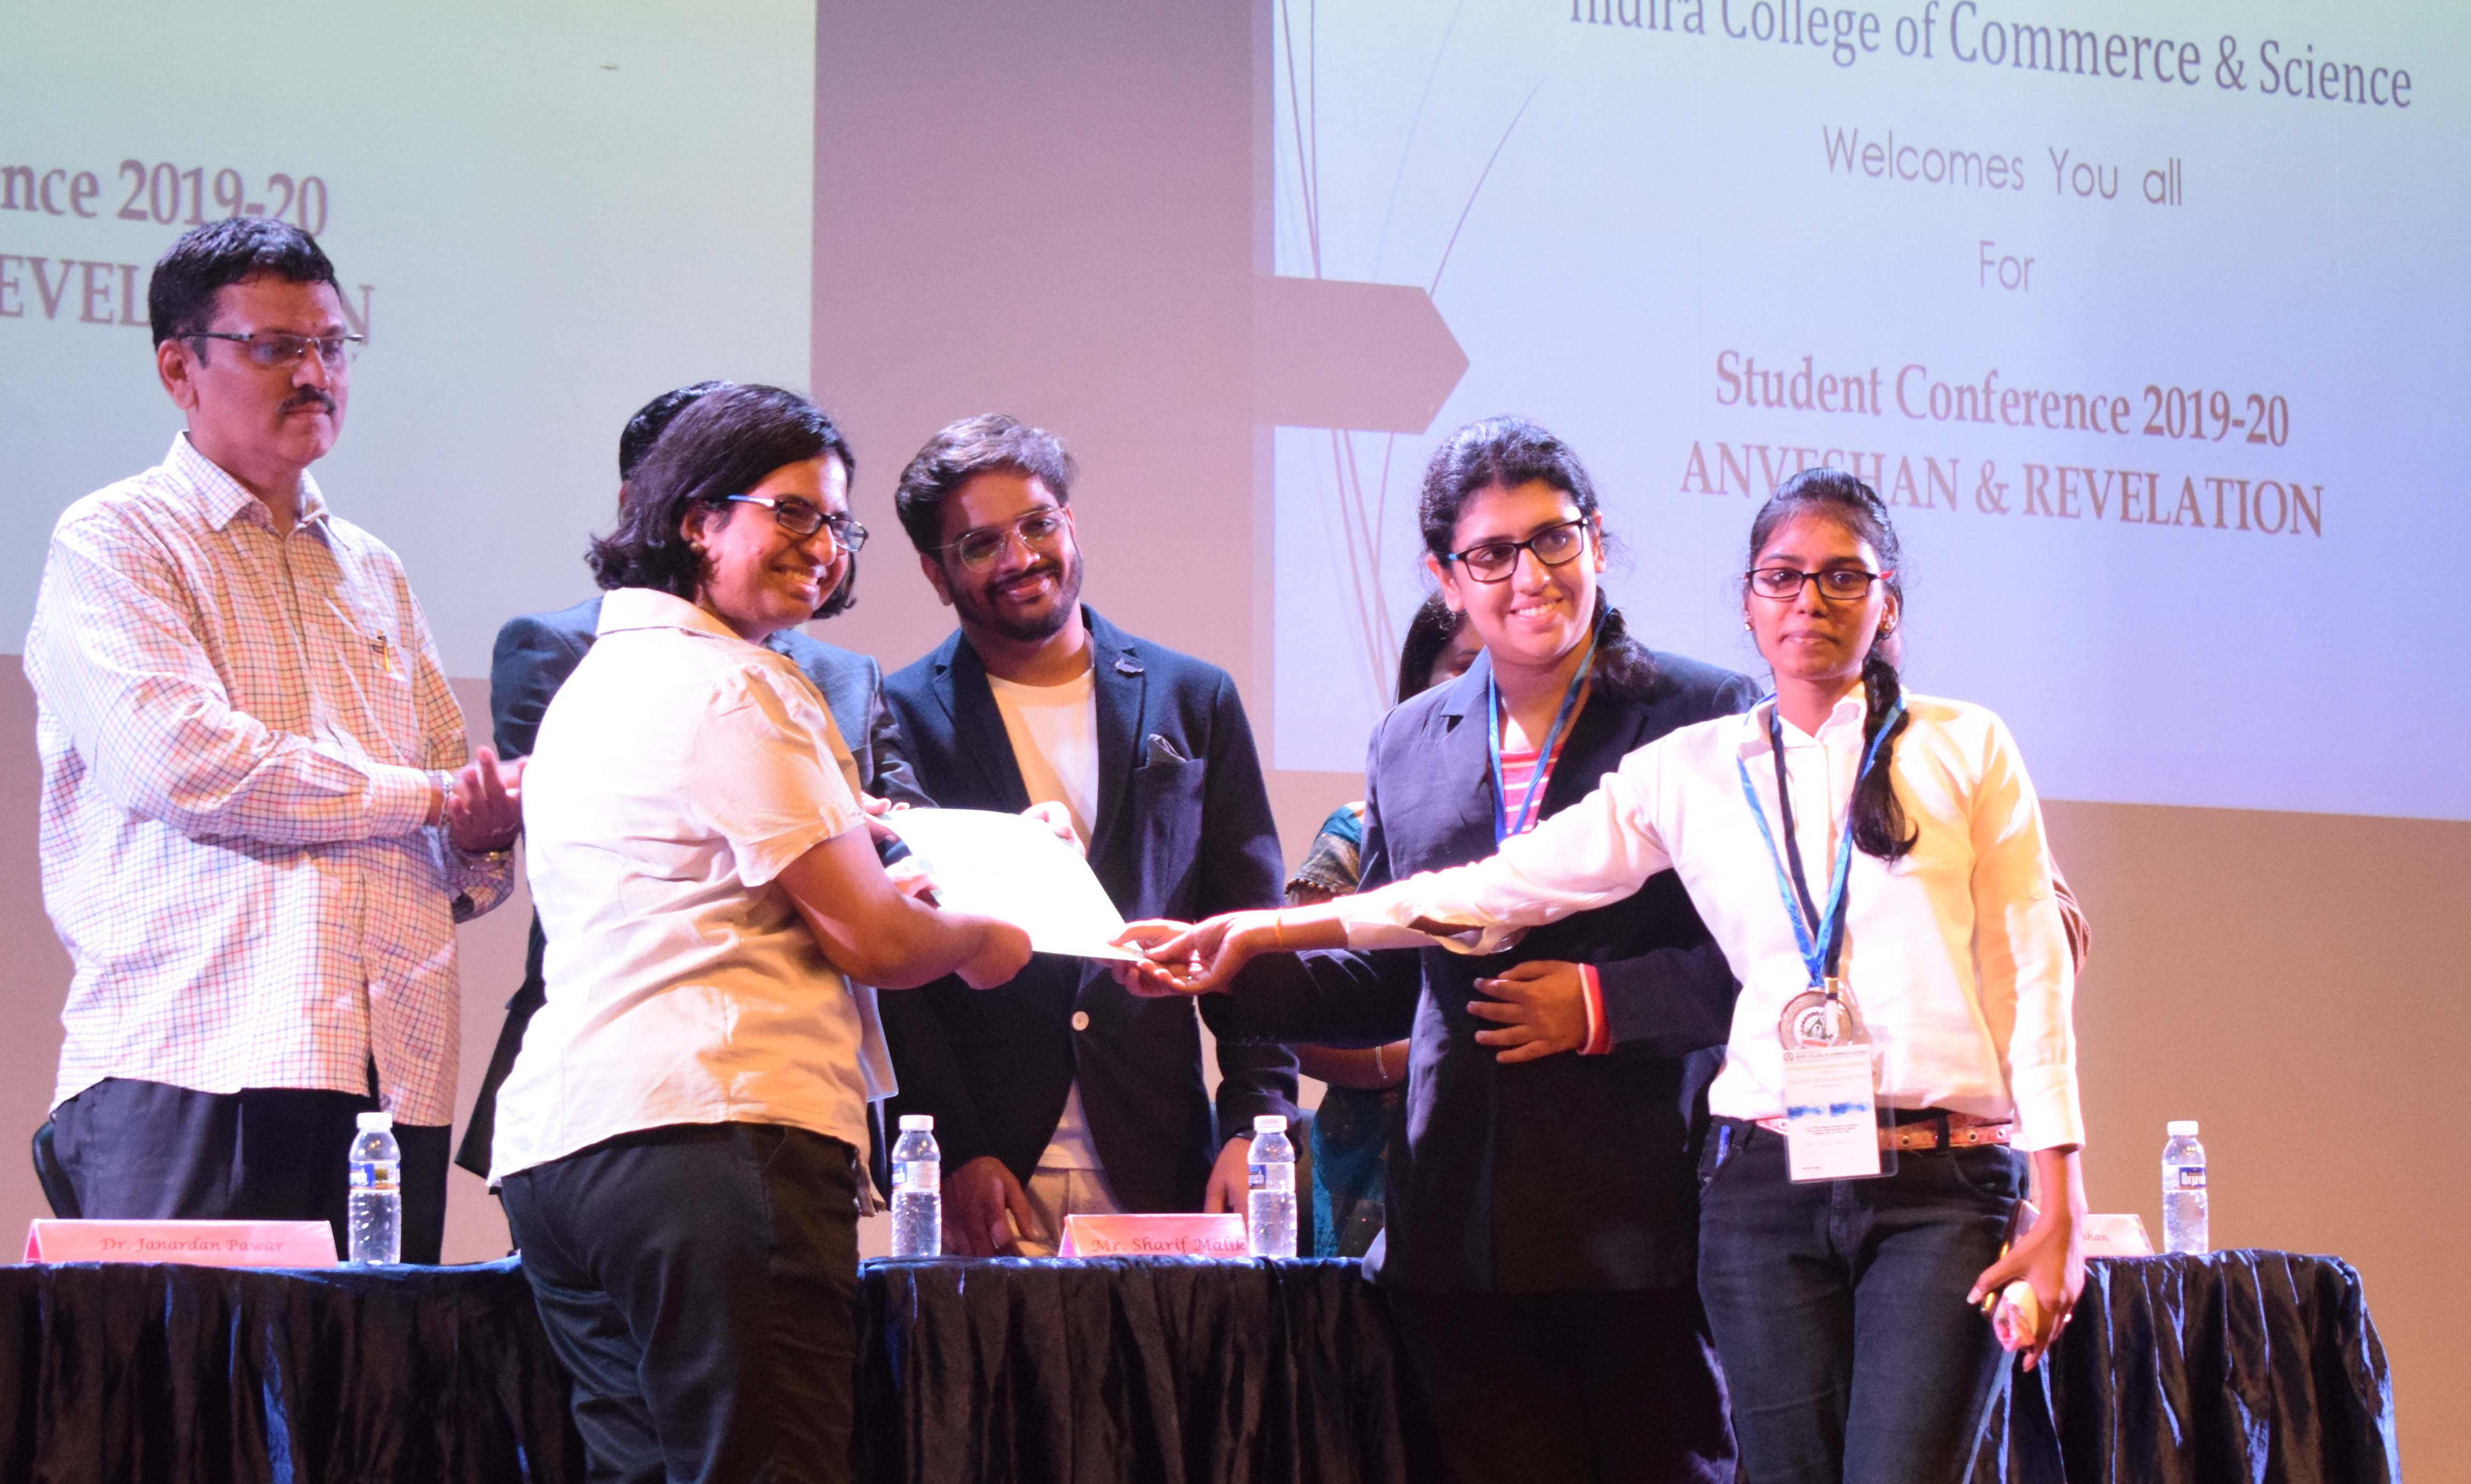 Third Prize Student Research Conference Indira College